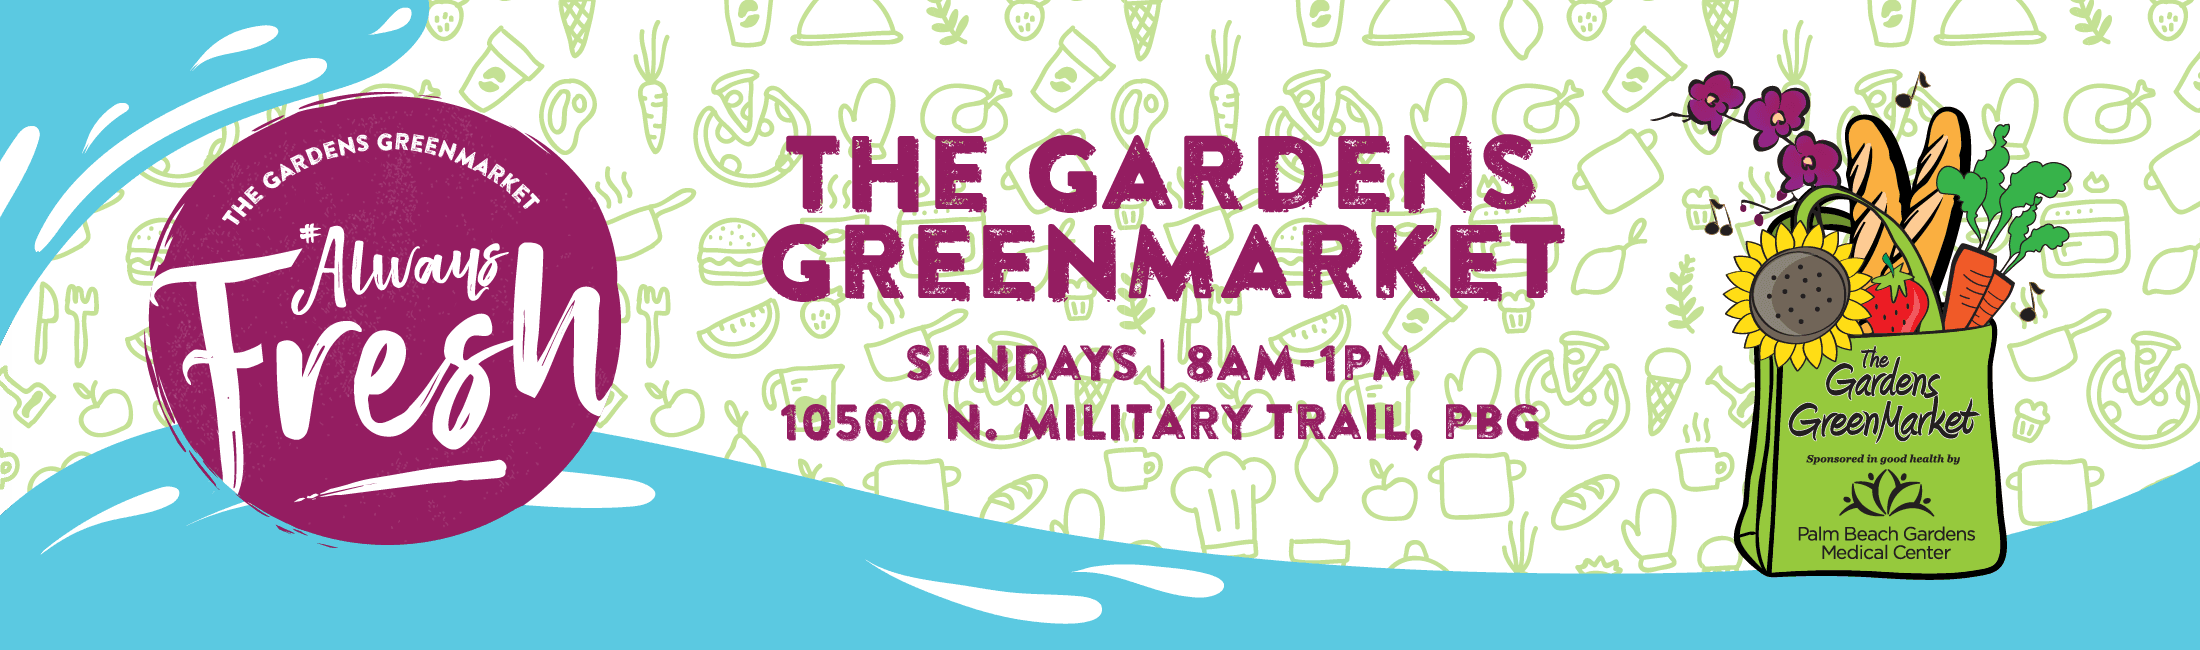 The Gardens GreenMarket, Always Fresh, Sundays 8am-1pm, 10500 N. Military Trail, sponsored in good h